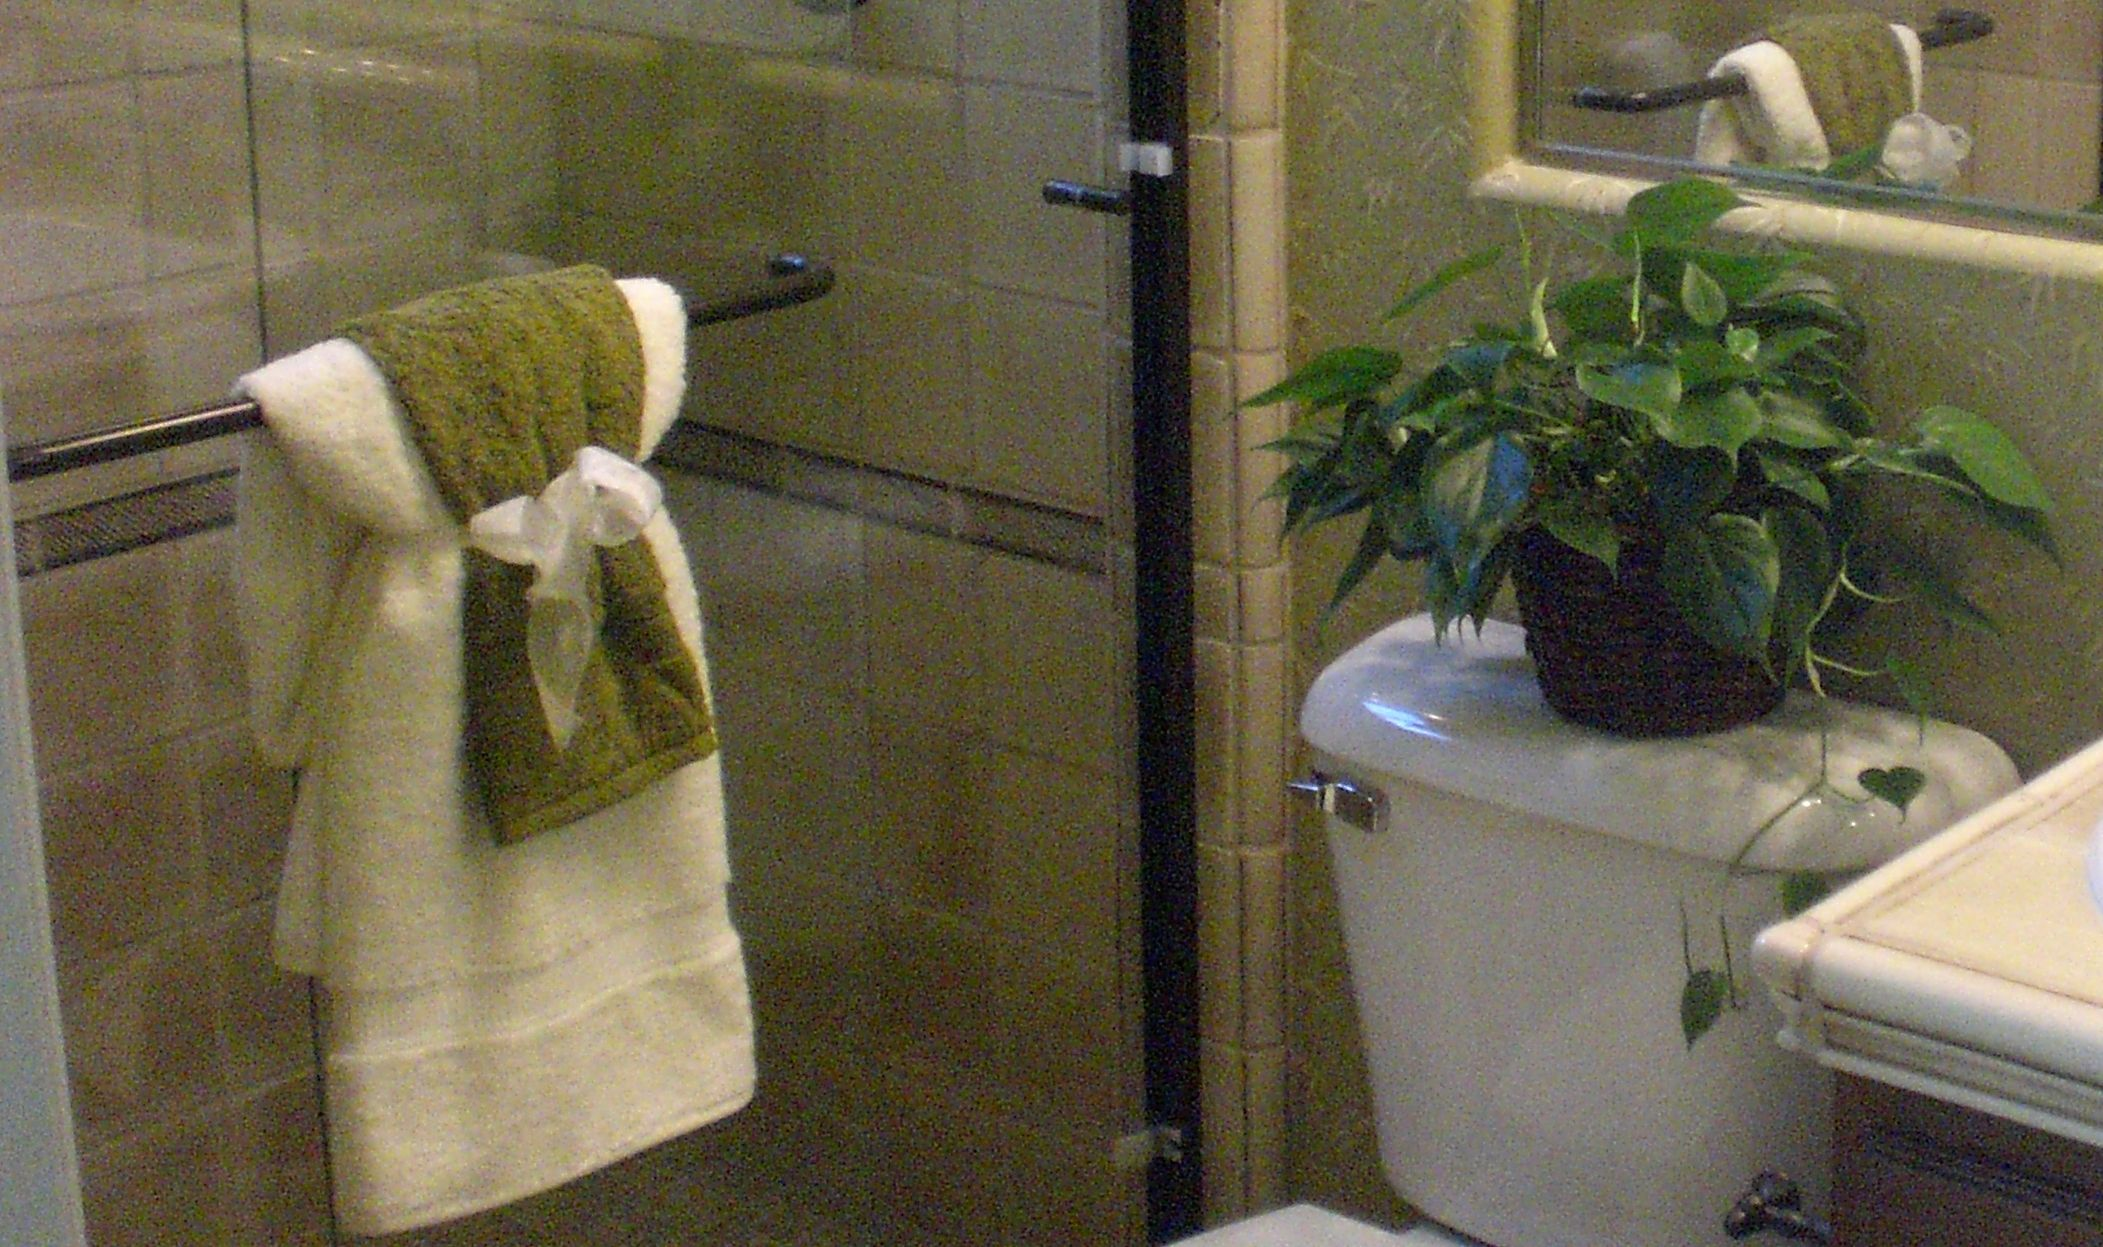 Towel Decorations Everyday Items Towels And Bathroom - Plum towels for small bathroom ideas